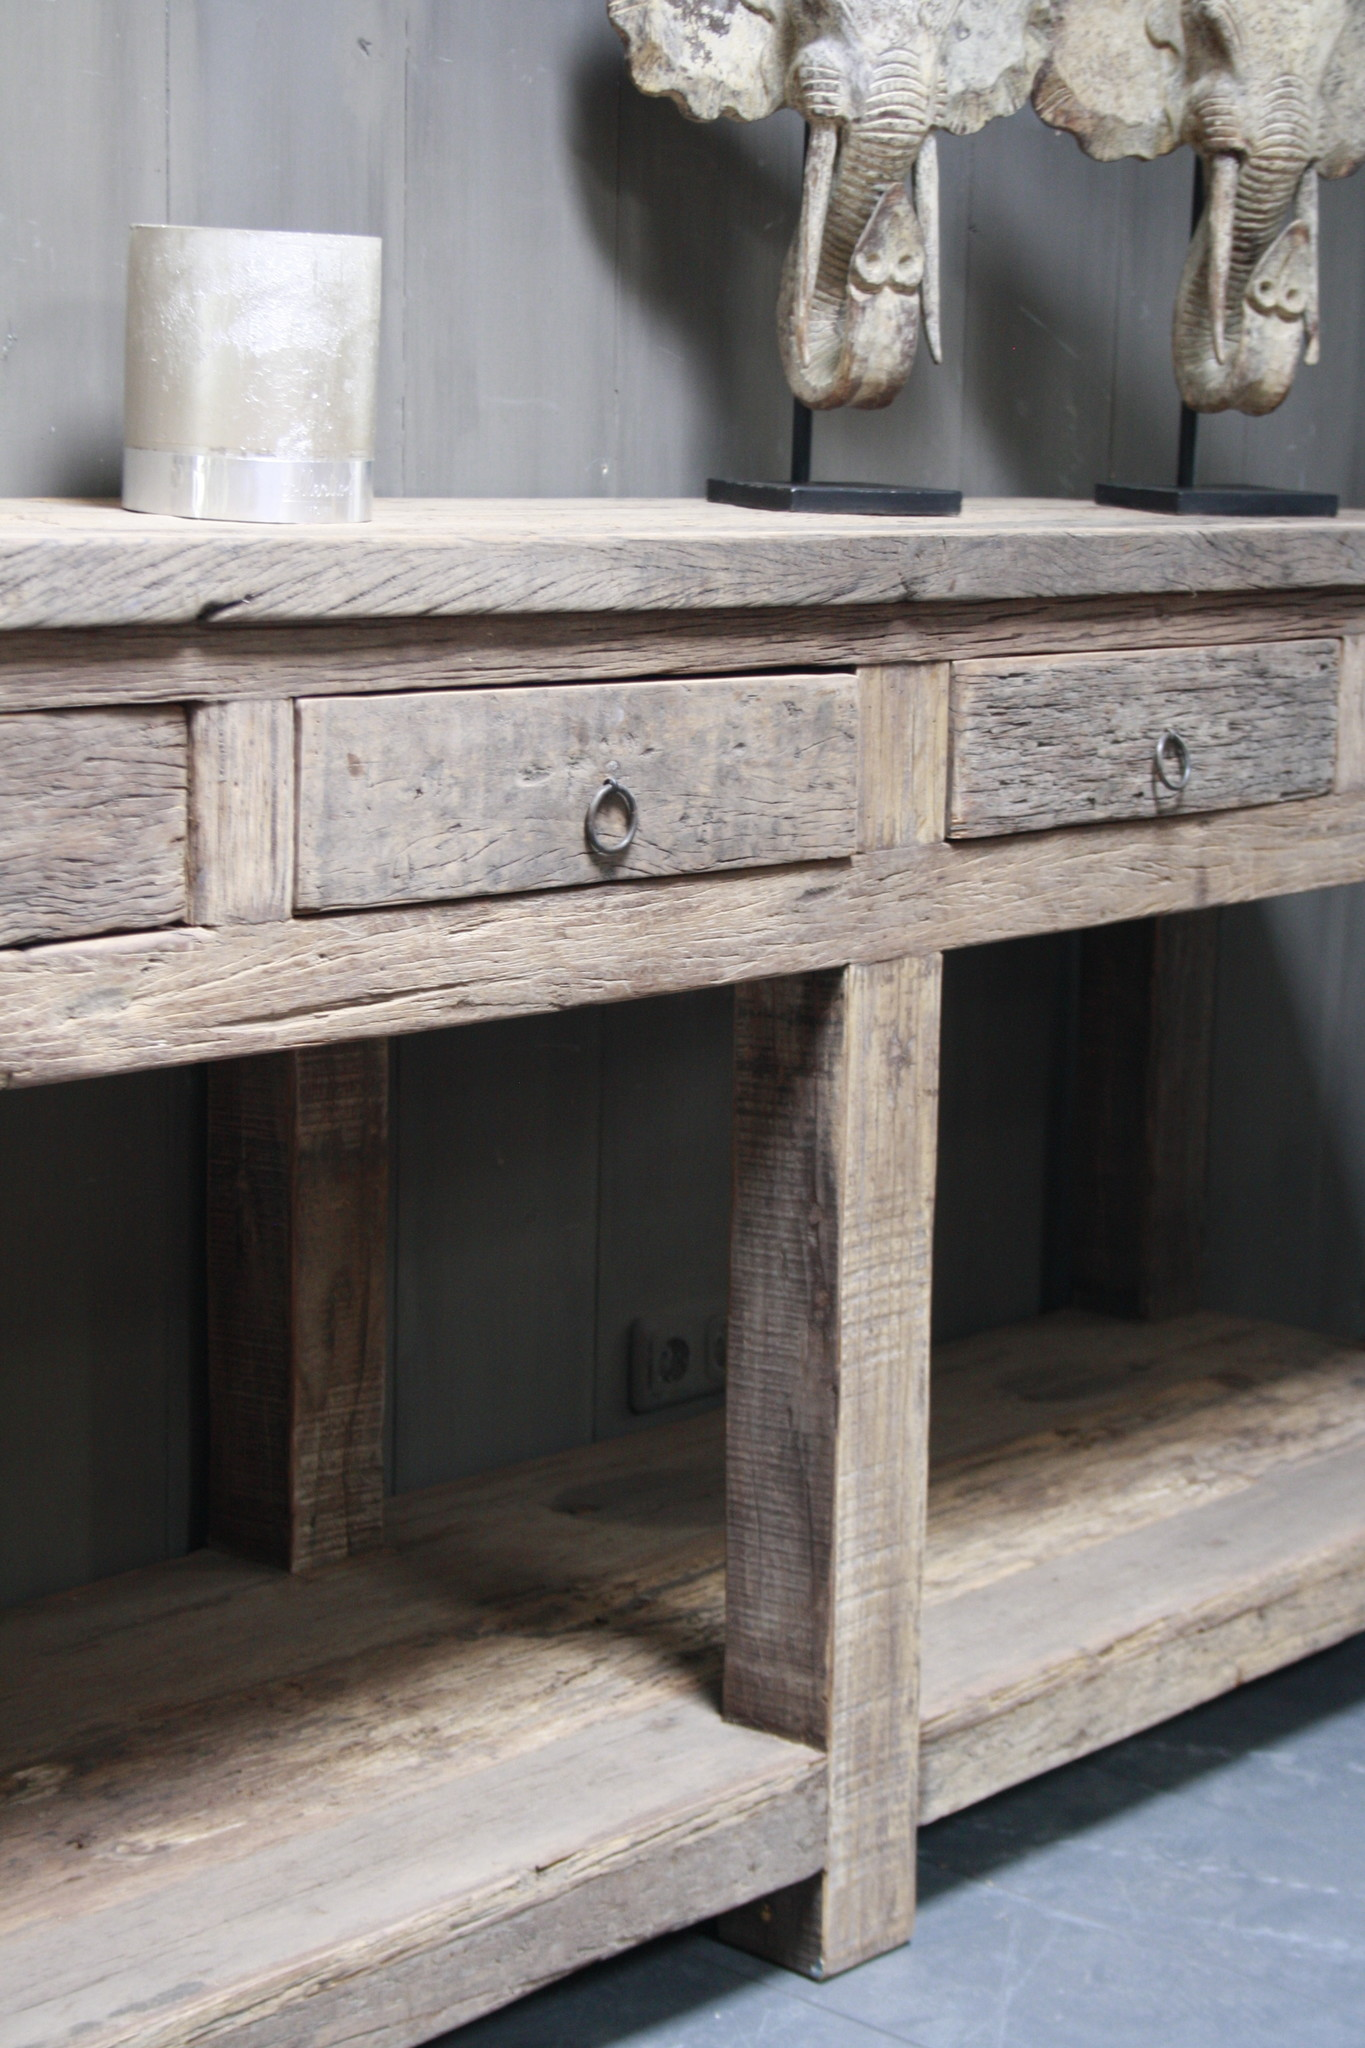 Sidetable Bassano oud hout met lades 226 x 60 x 90-4